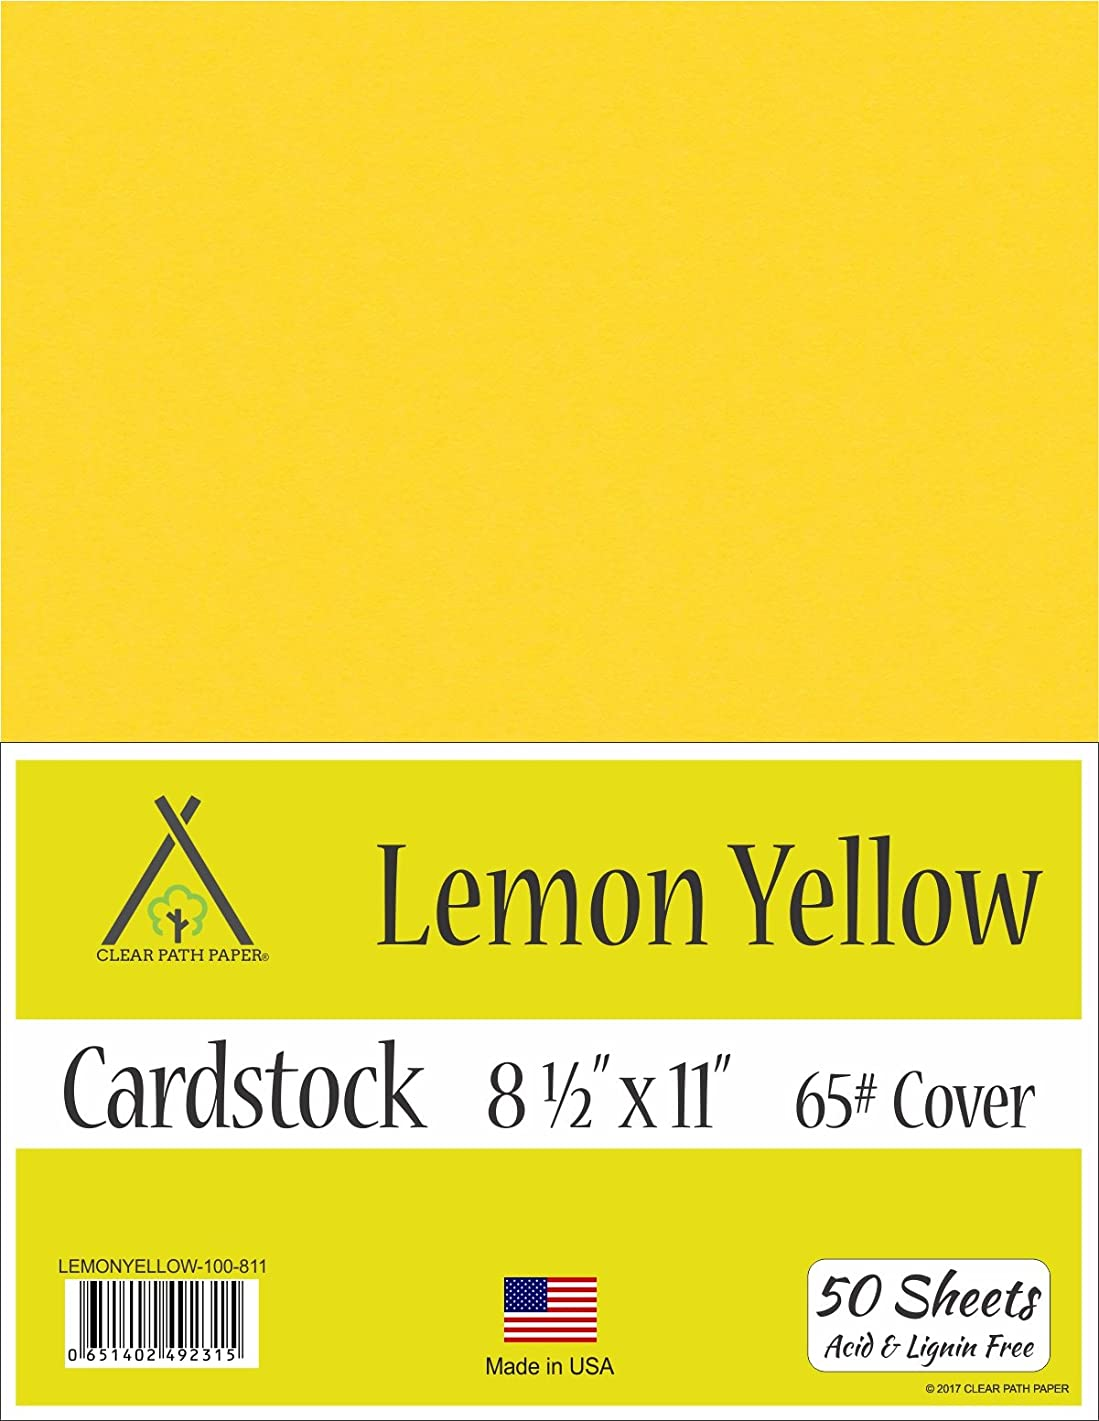 Lemon Yellow Cardstock - 8.5 x 11 inch - 65Lb Cover - 50 Sheets